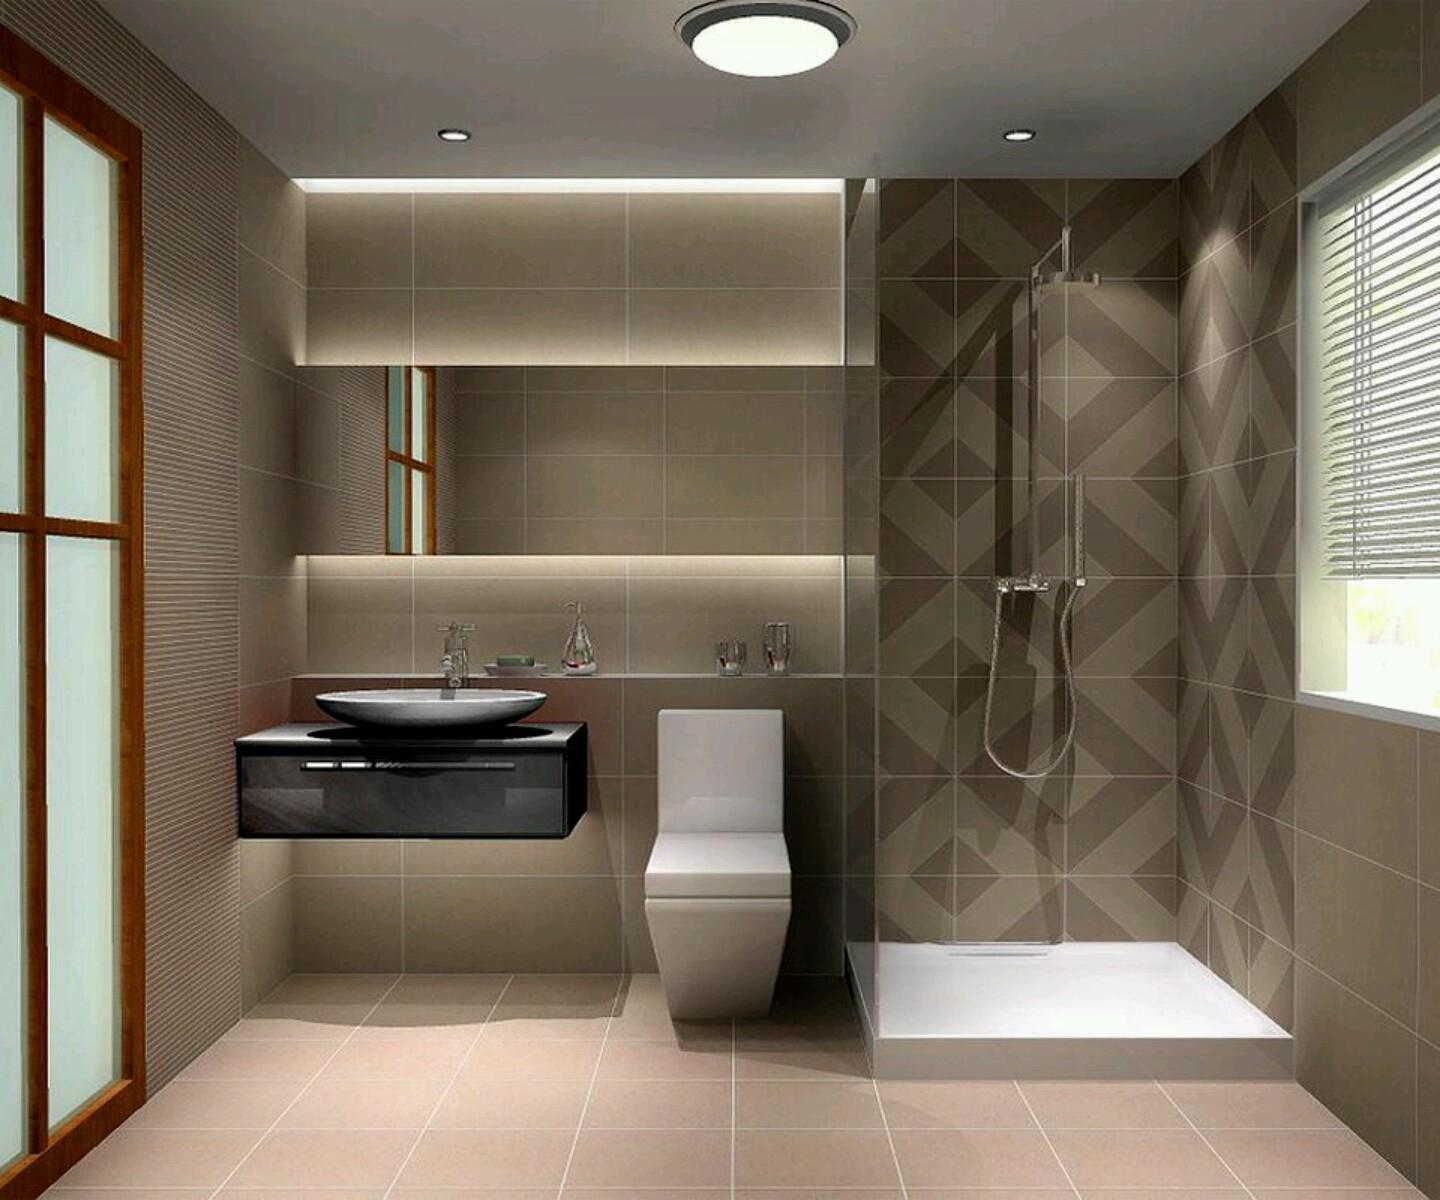 33 Surprisingly Contemporary Bathroom Designs Ideas That Can Make Your House Haunted Beautiful Decoratorist